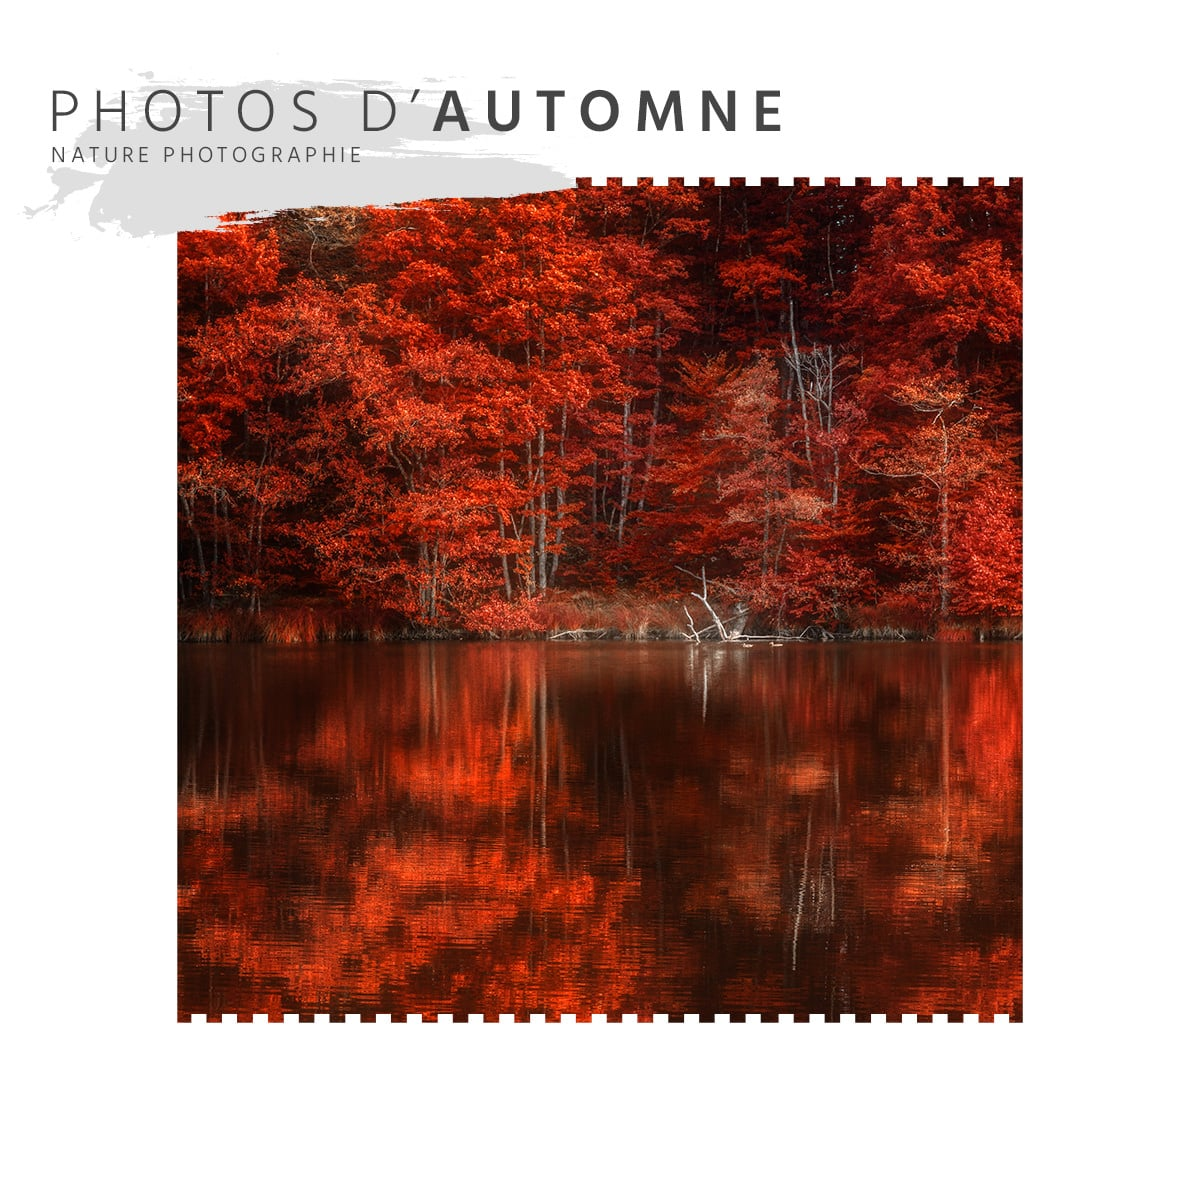 Photos d'automne